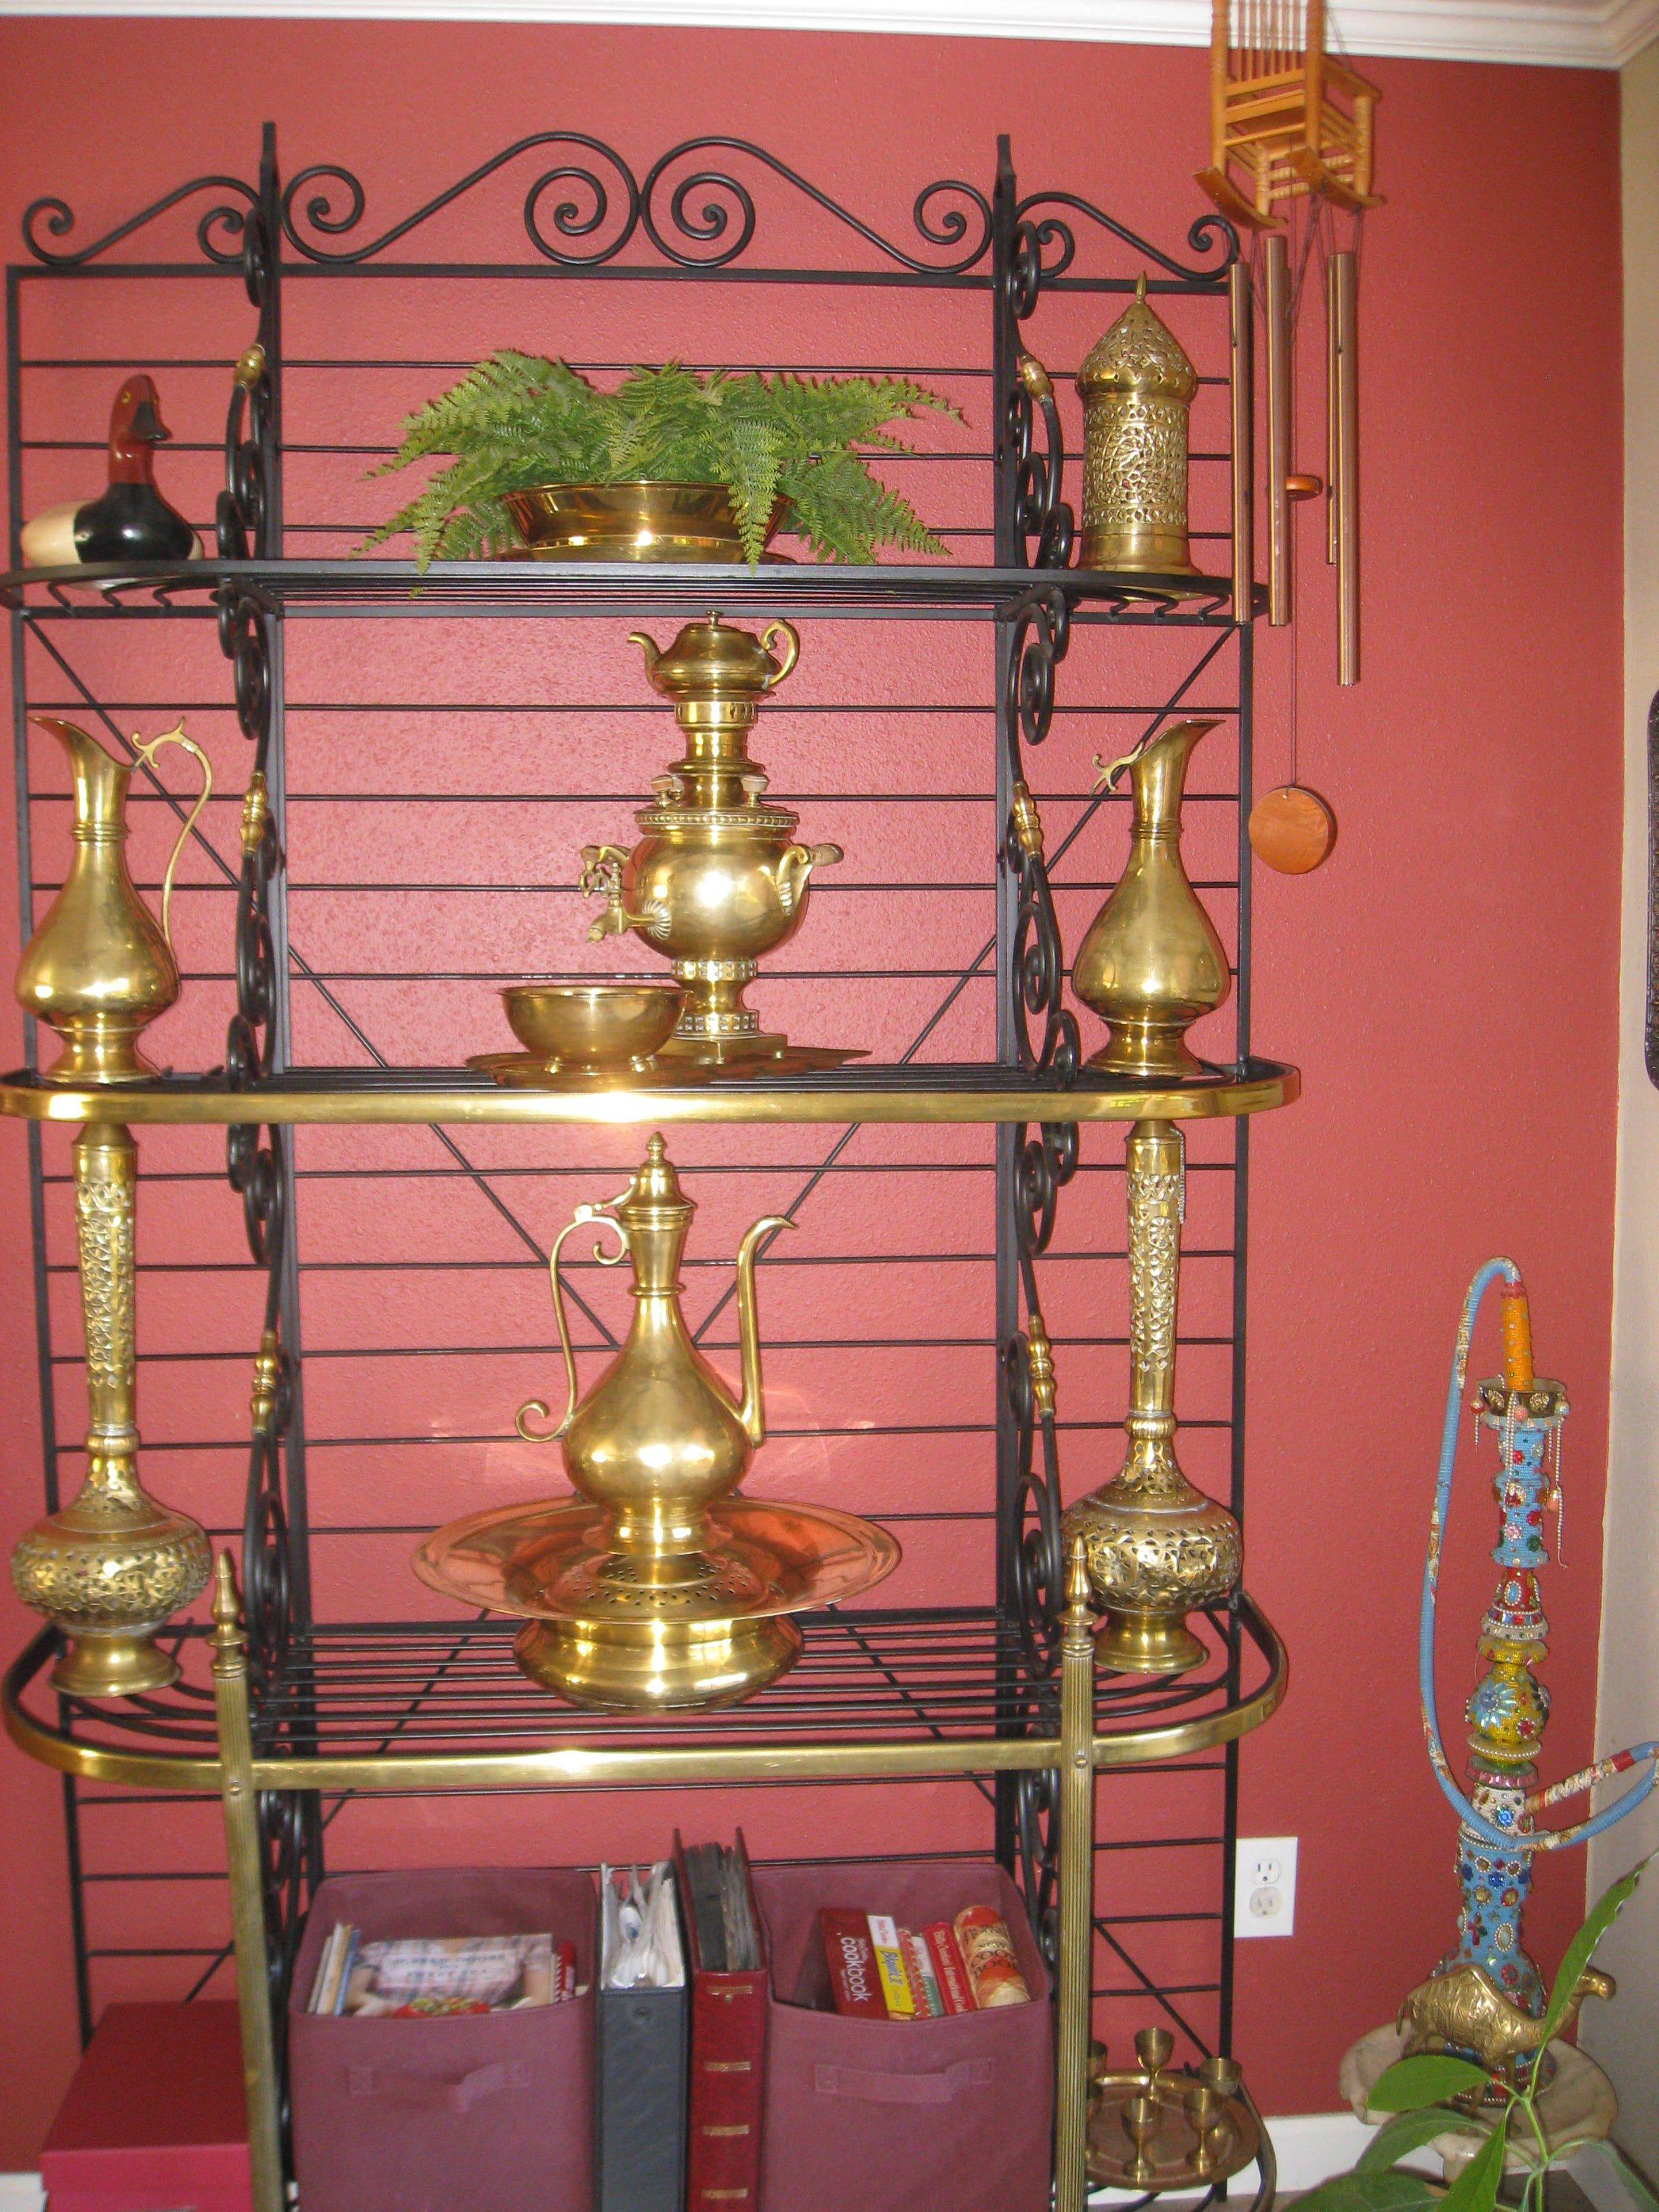 Brass & Hookah from Iran (With images) Home decor, Decor